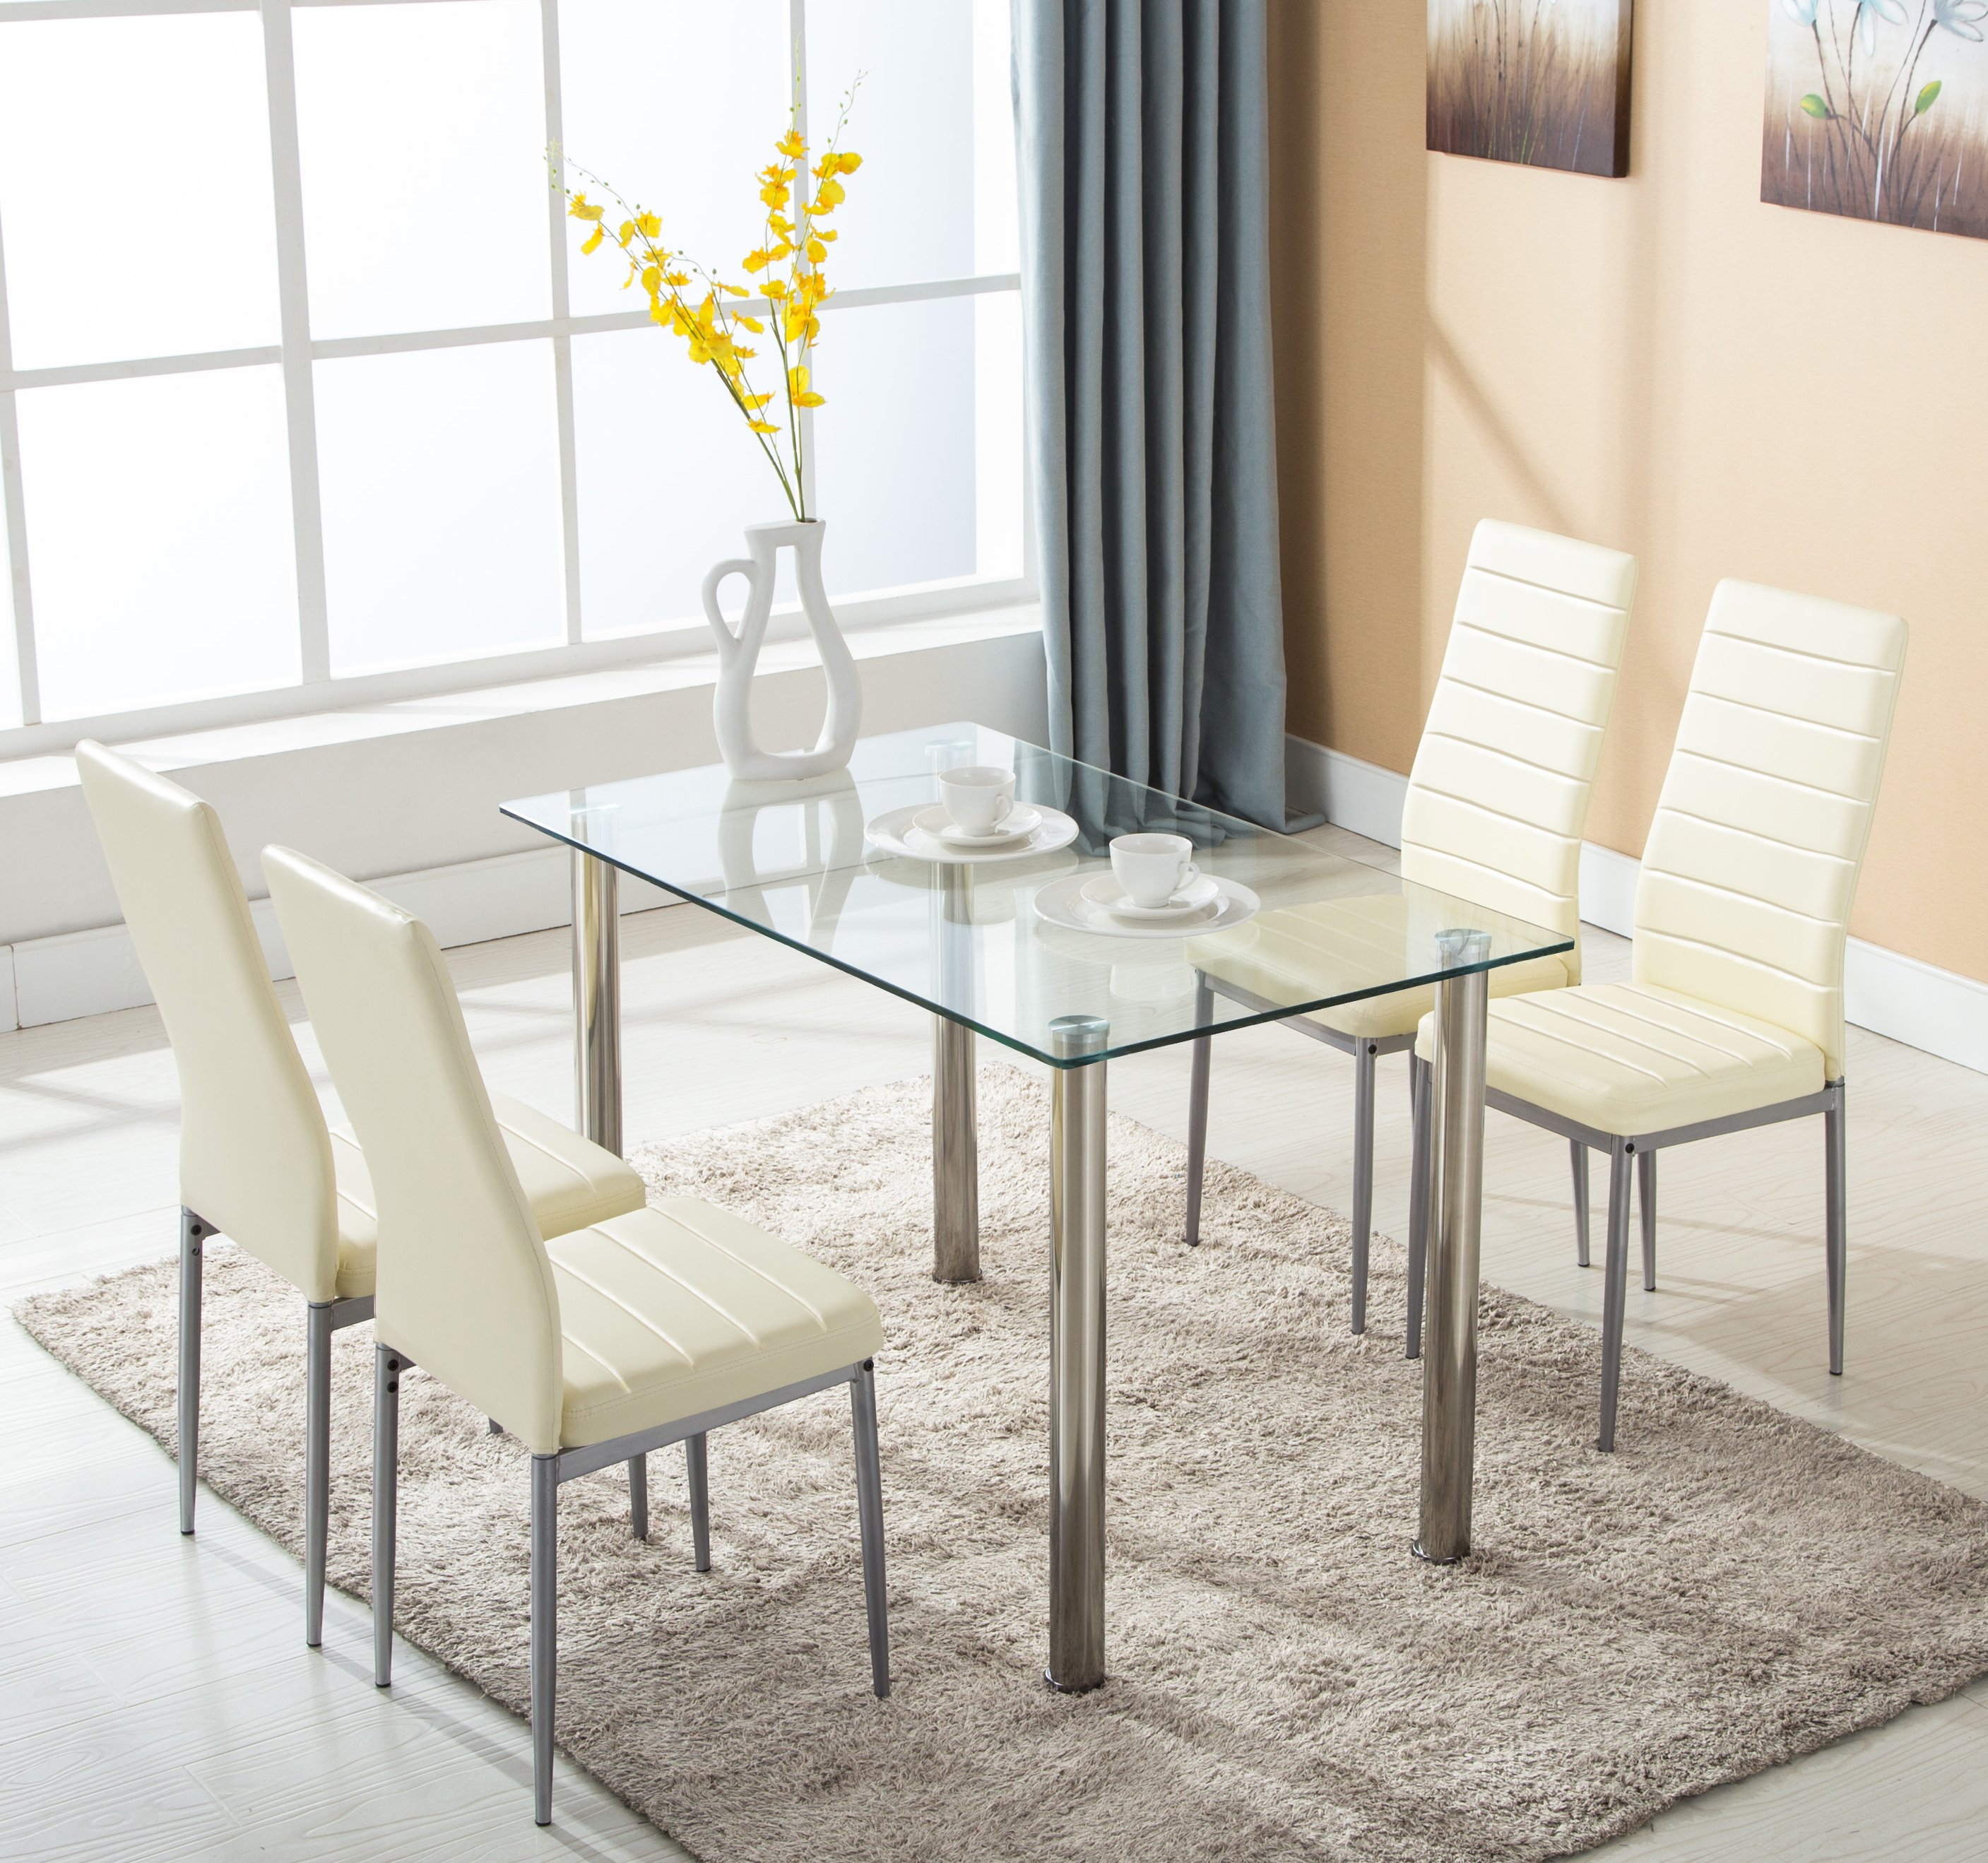 Glass Dining Table Set: 5 Piece Dining Table Set W/4 Chairs Glass Metal Kitchen